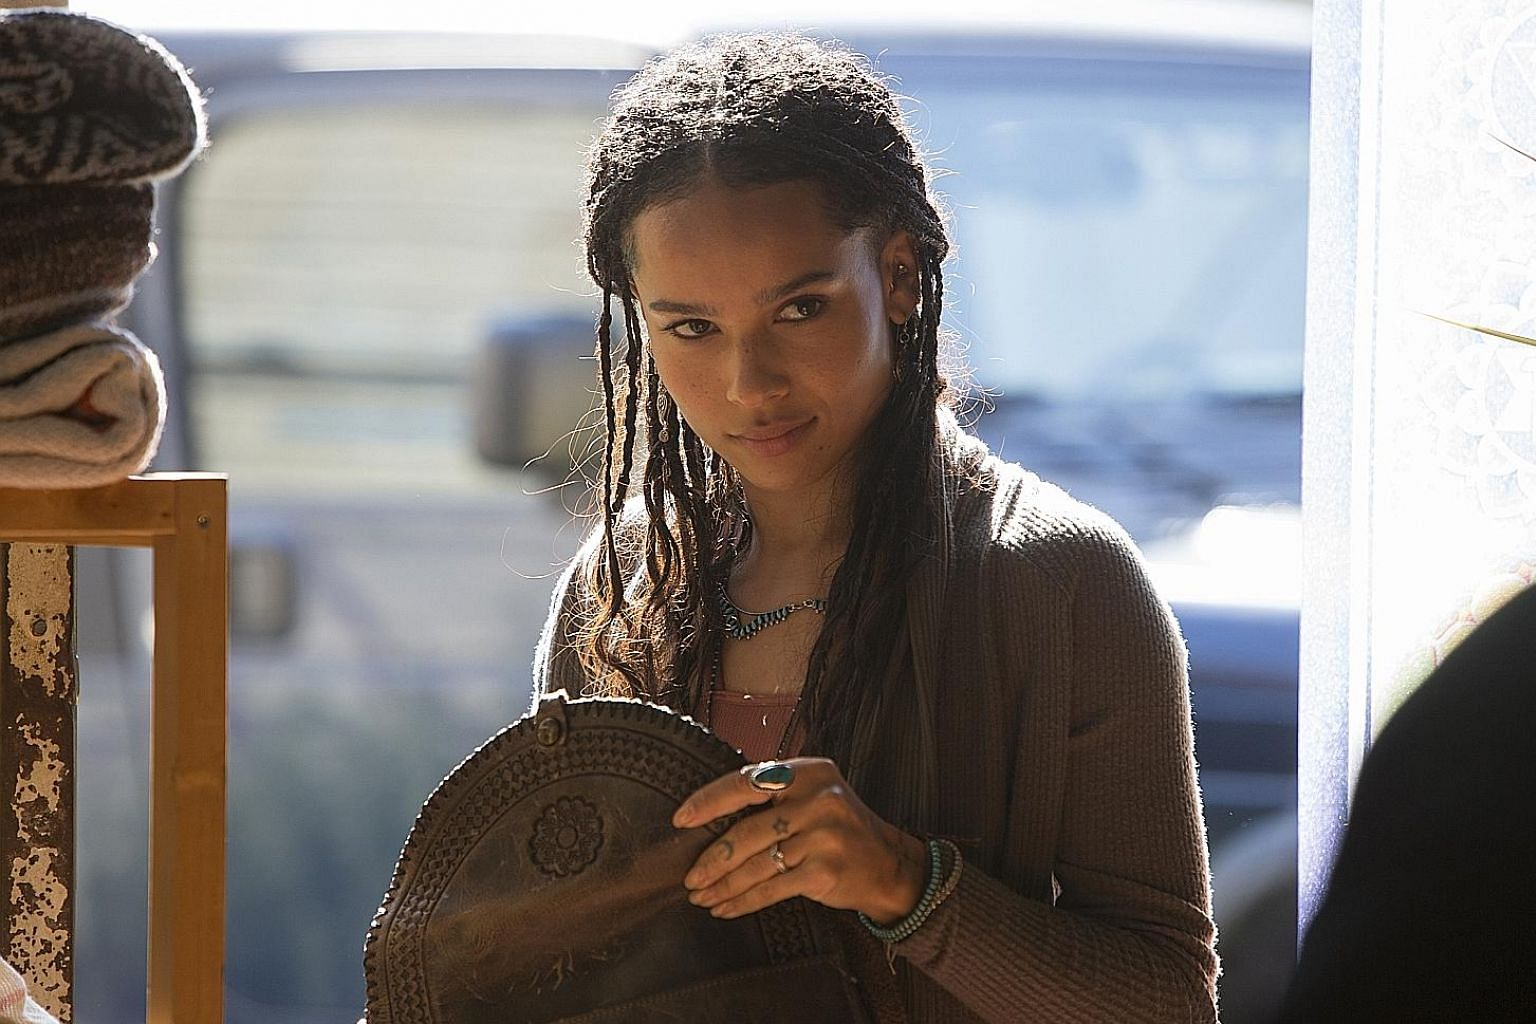 Zoe Kravitz (above) plays the young and hip Bonnie in Big Little Lies, while Timothy Olyphant is the husband of a flesh-eating woman (Drew Barrymore) in Santa Clarita Diet.